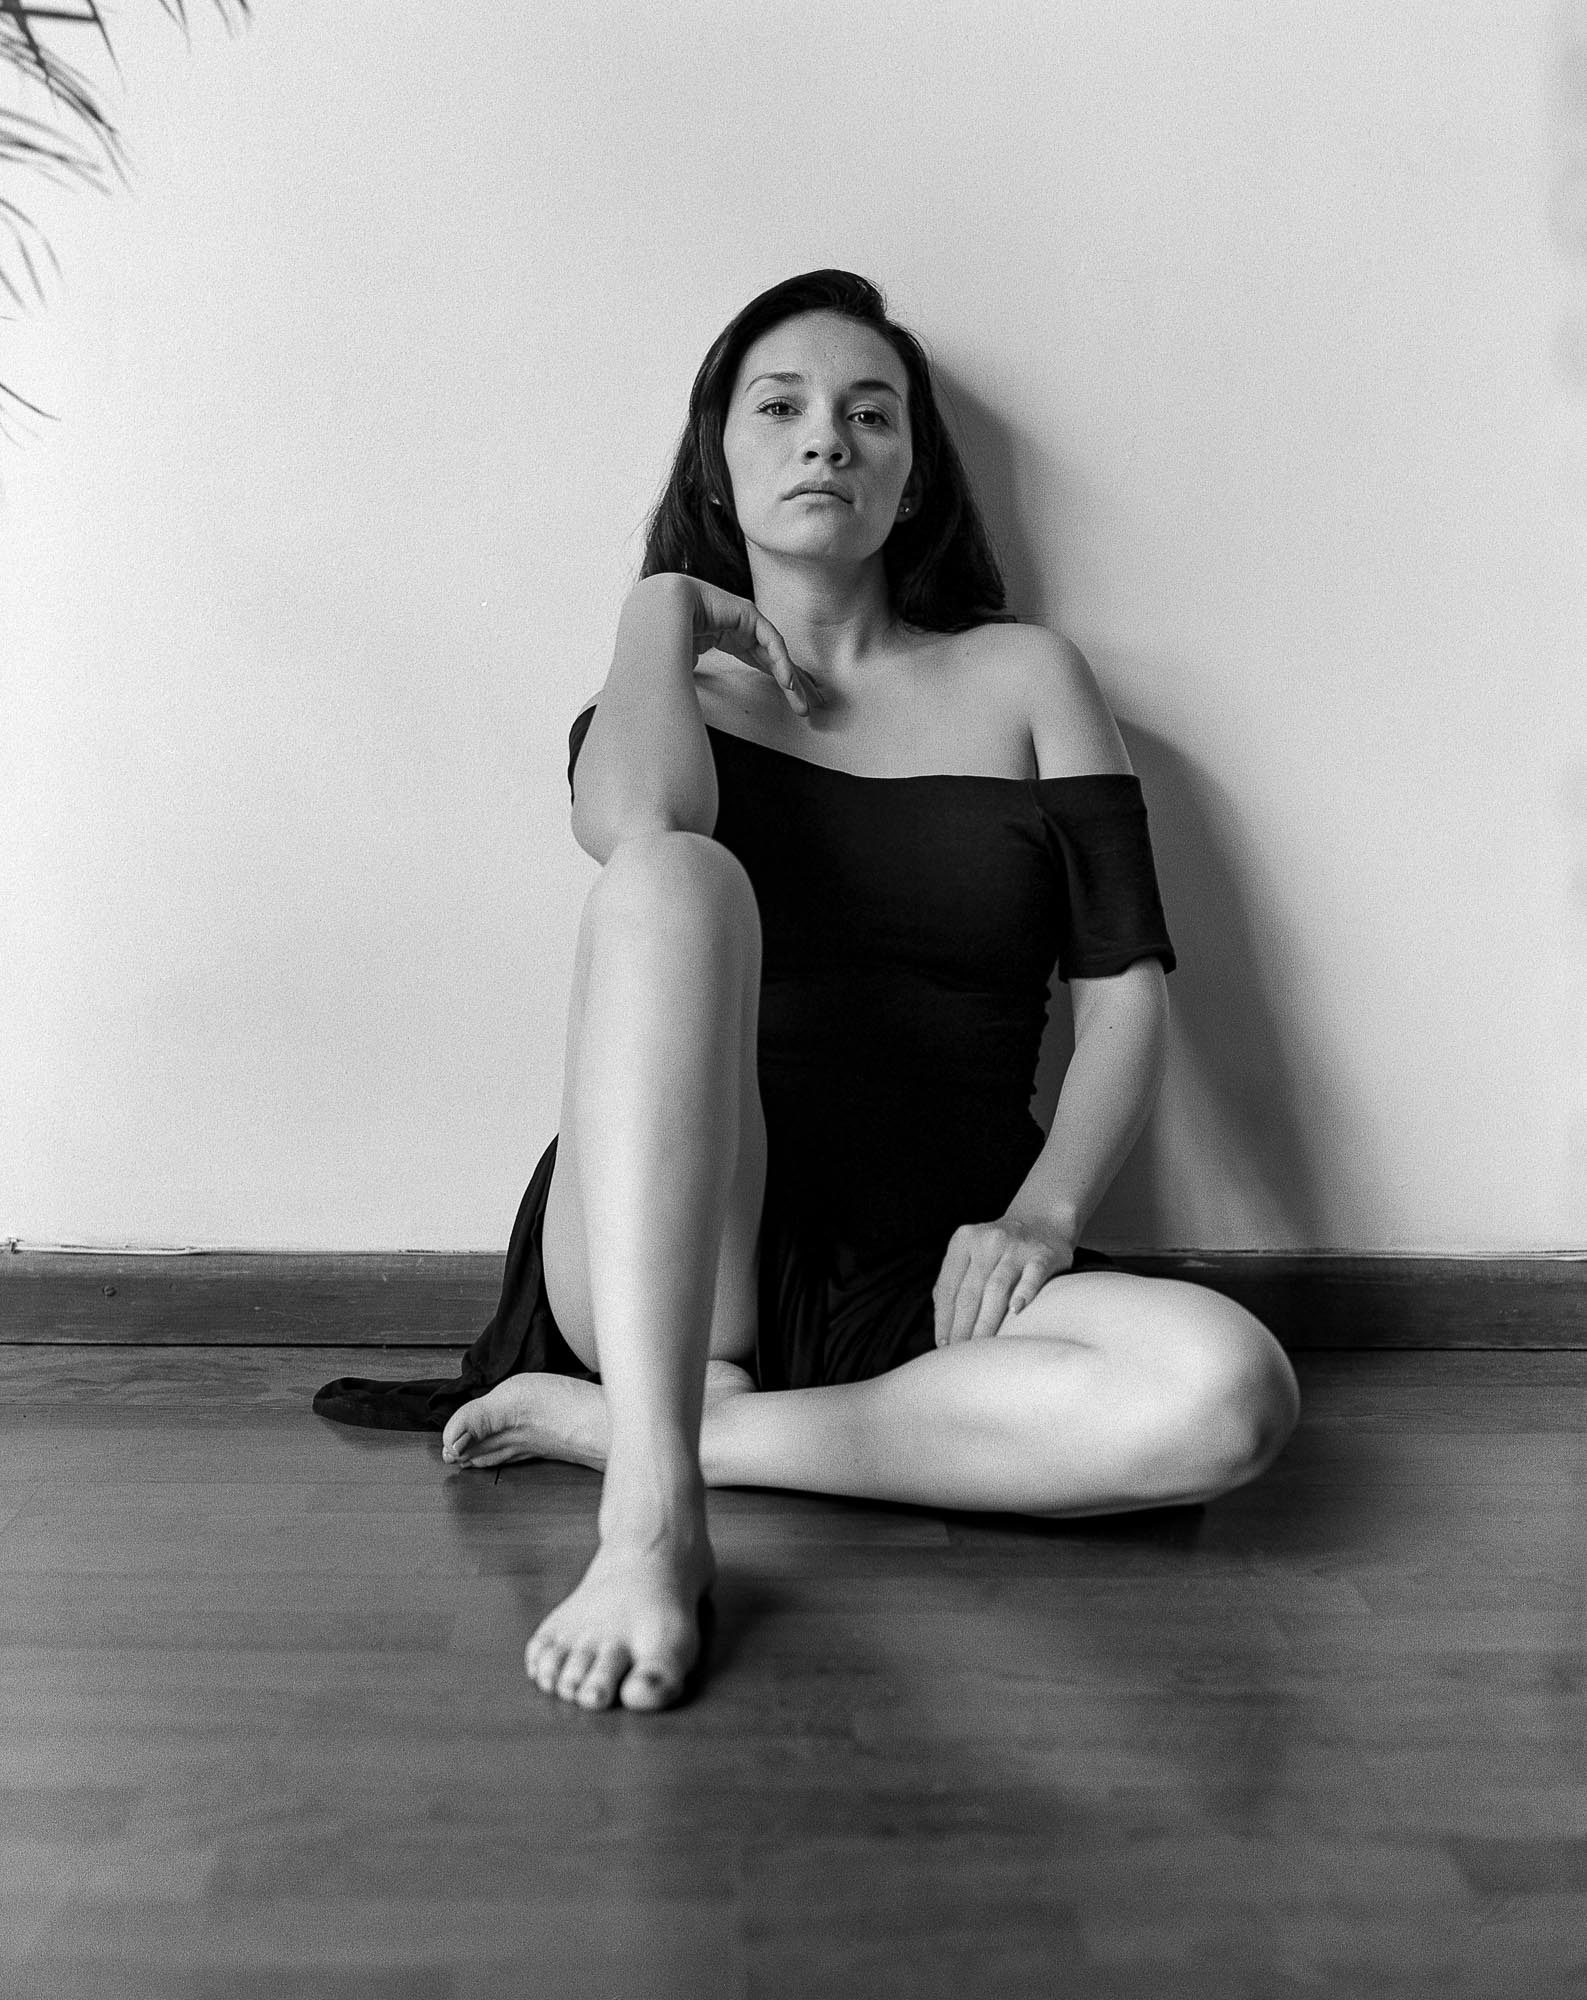 woman dressed in black situated on the floor